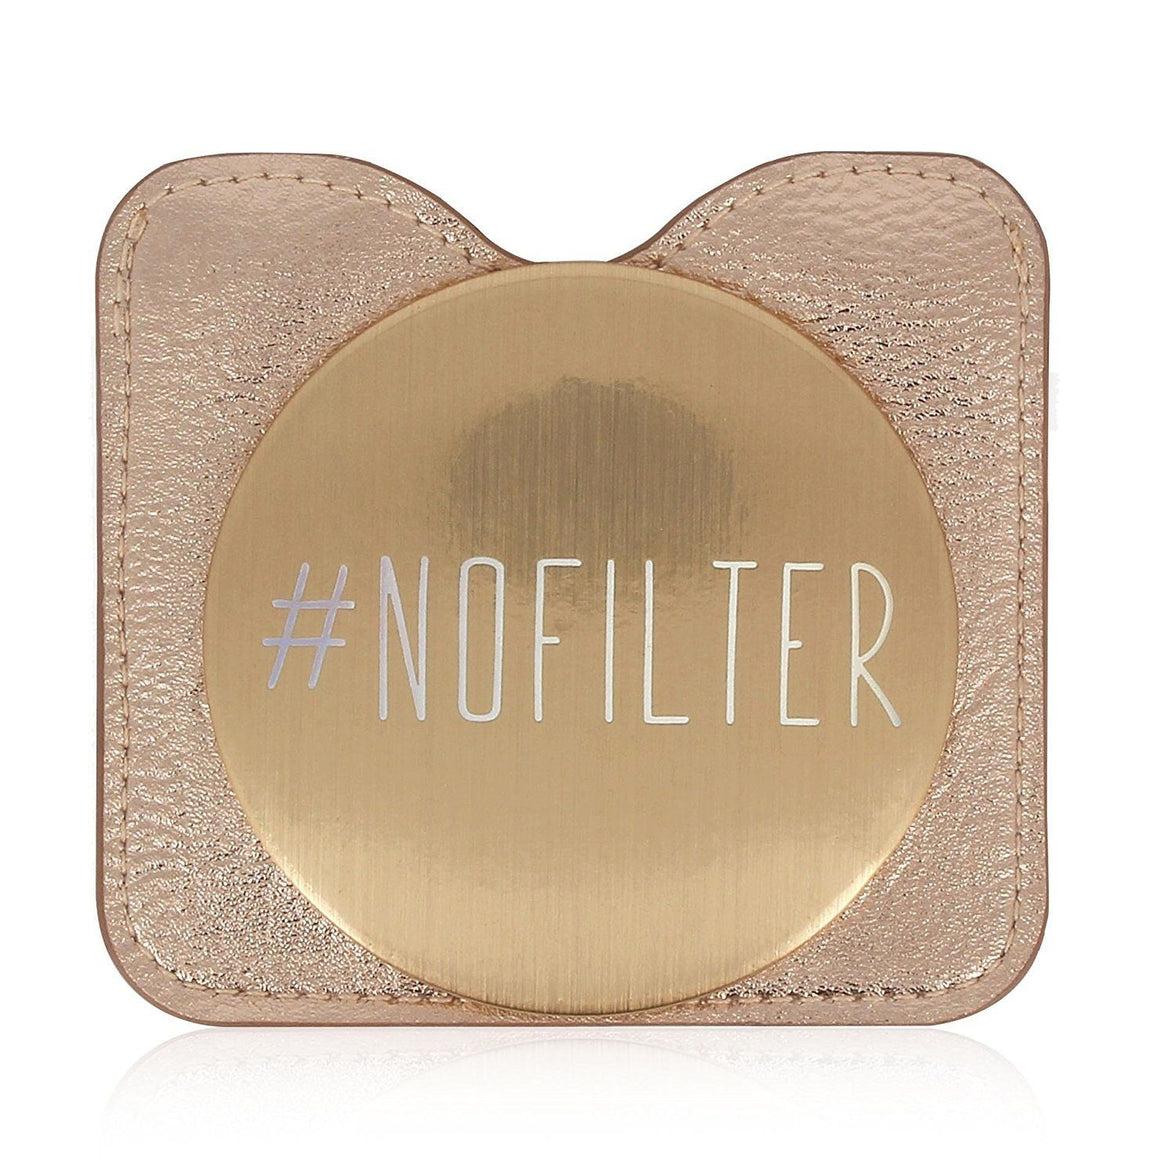 BEAUTY - SOKO READY COMPACT MIRROR #NOFILTER, Beauty, NPW - Bon + Co. Party Studio